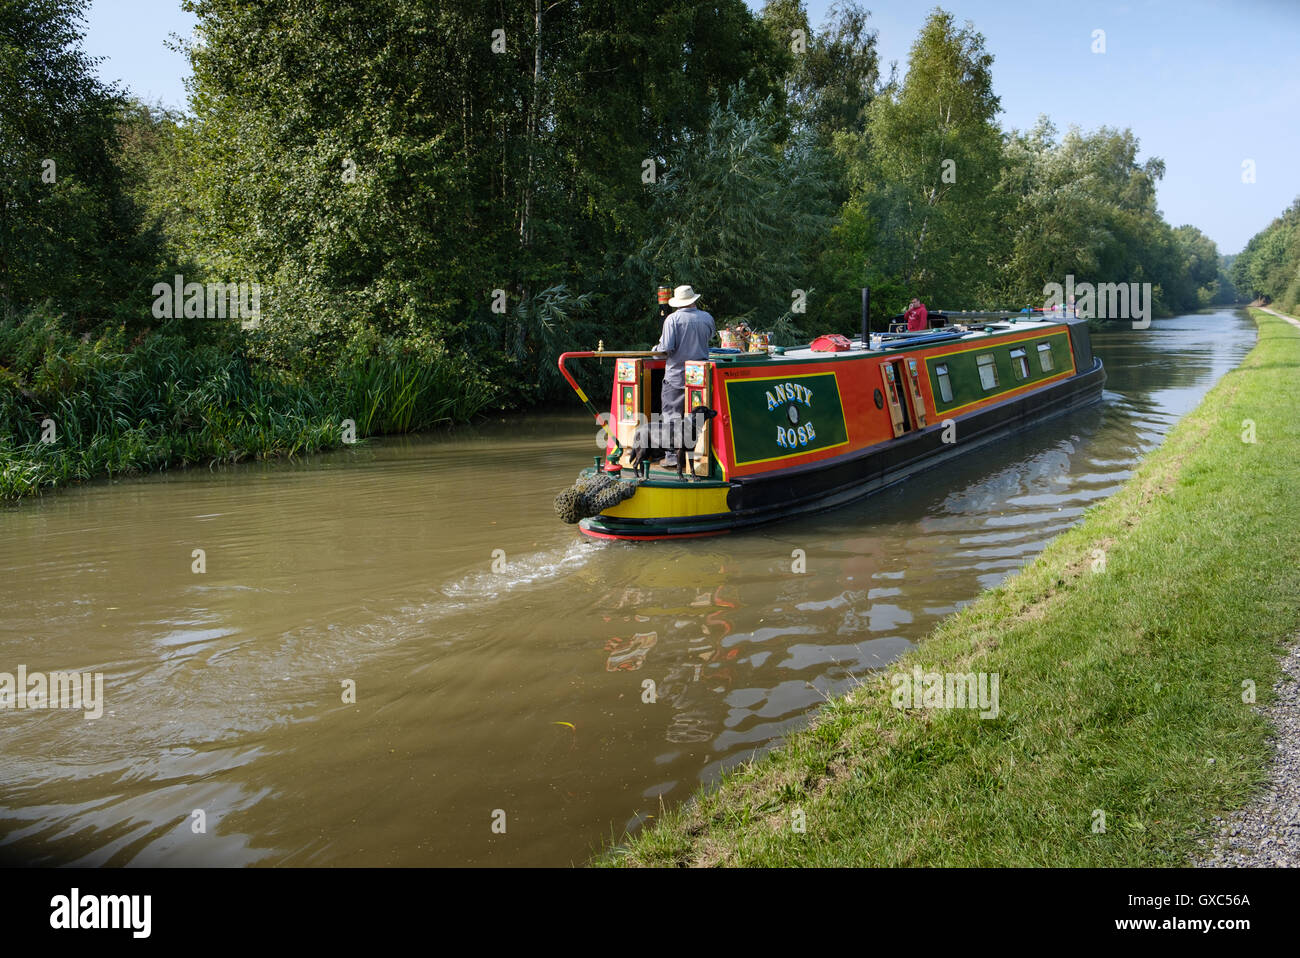 Canal boat in Pooley Country Park Warwickshire - Stock Image